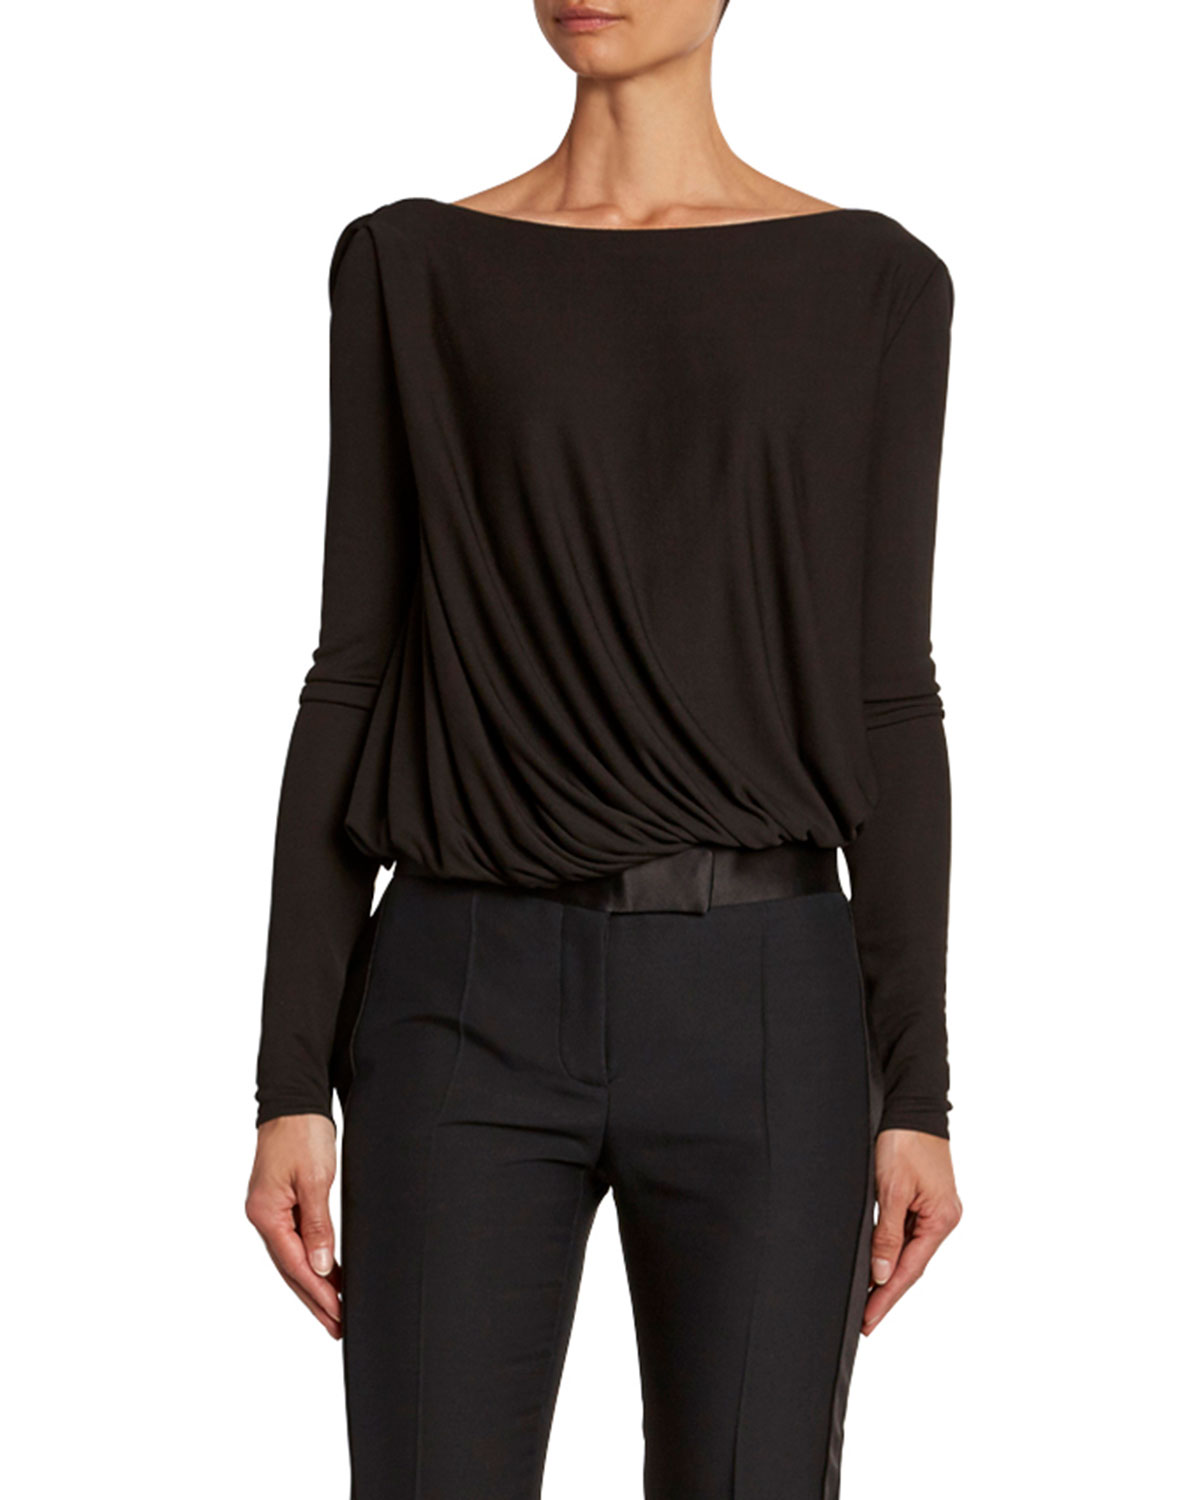 Tom Ford Suits DRAPED-FRONT JERSEY BODYSUIT